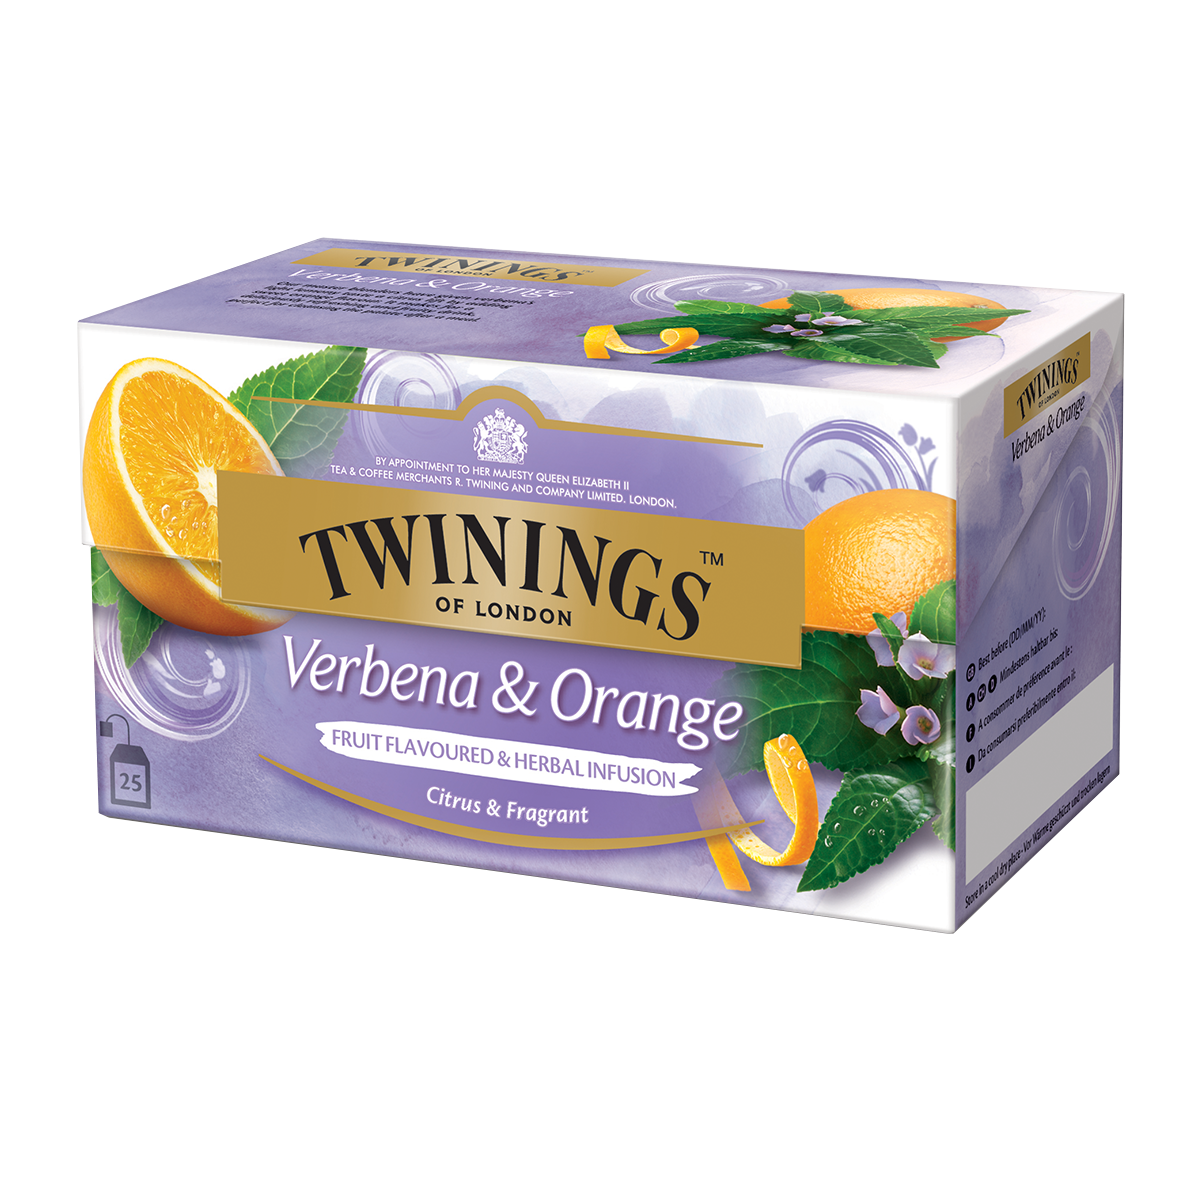 Twinings Eisenkraut & Orange 25 x 1.5 g